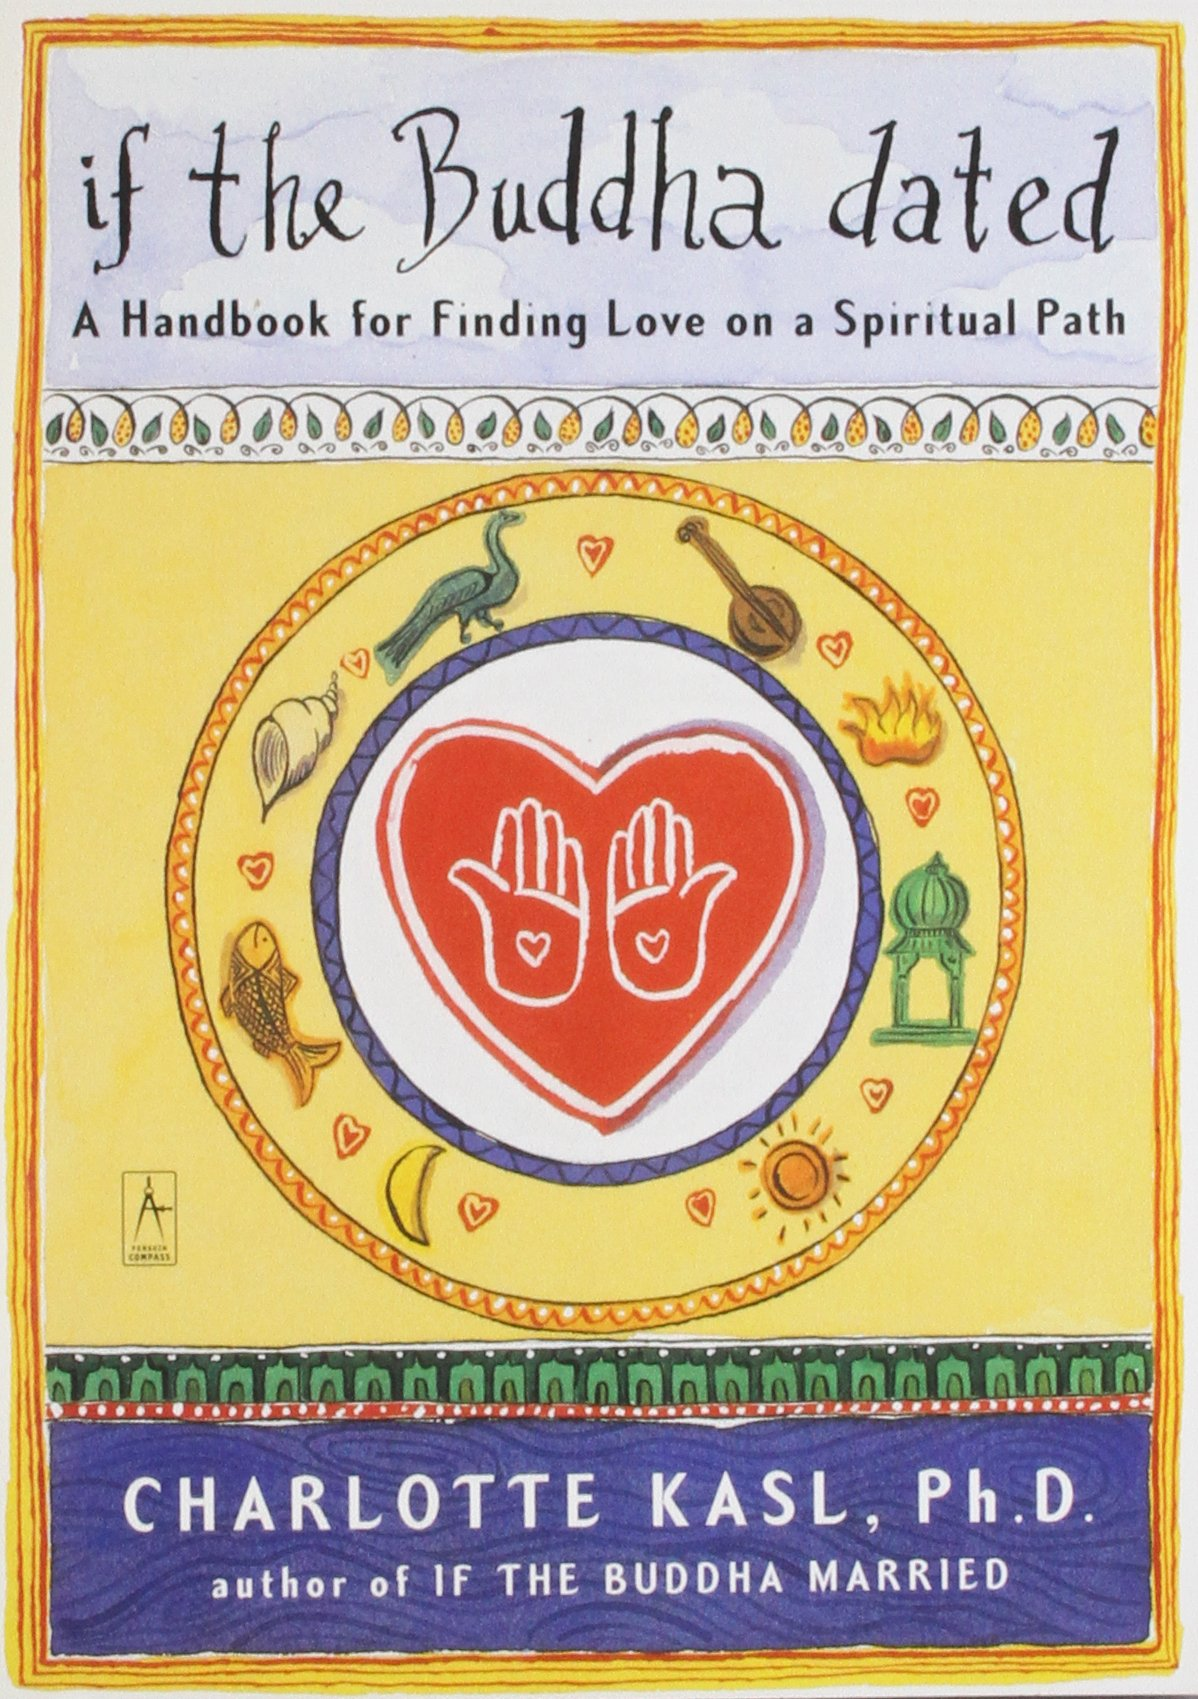 If the Buddha Dated: A Handbook for Finding Love on a Spiritual Path